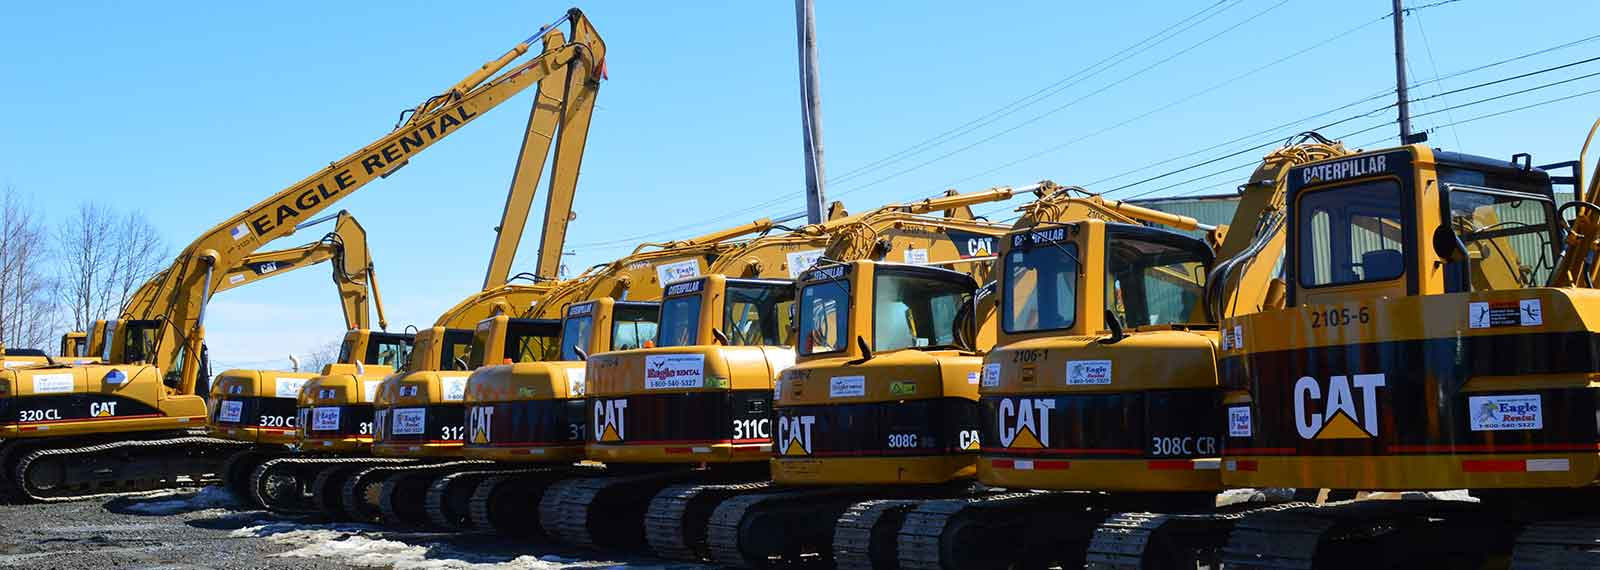 Slider-Eagle-Rental-Excavator-Rentals-3